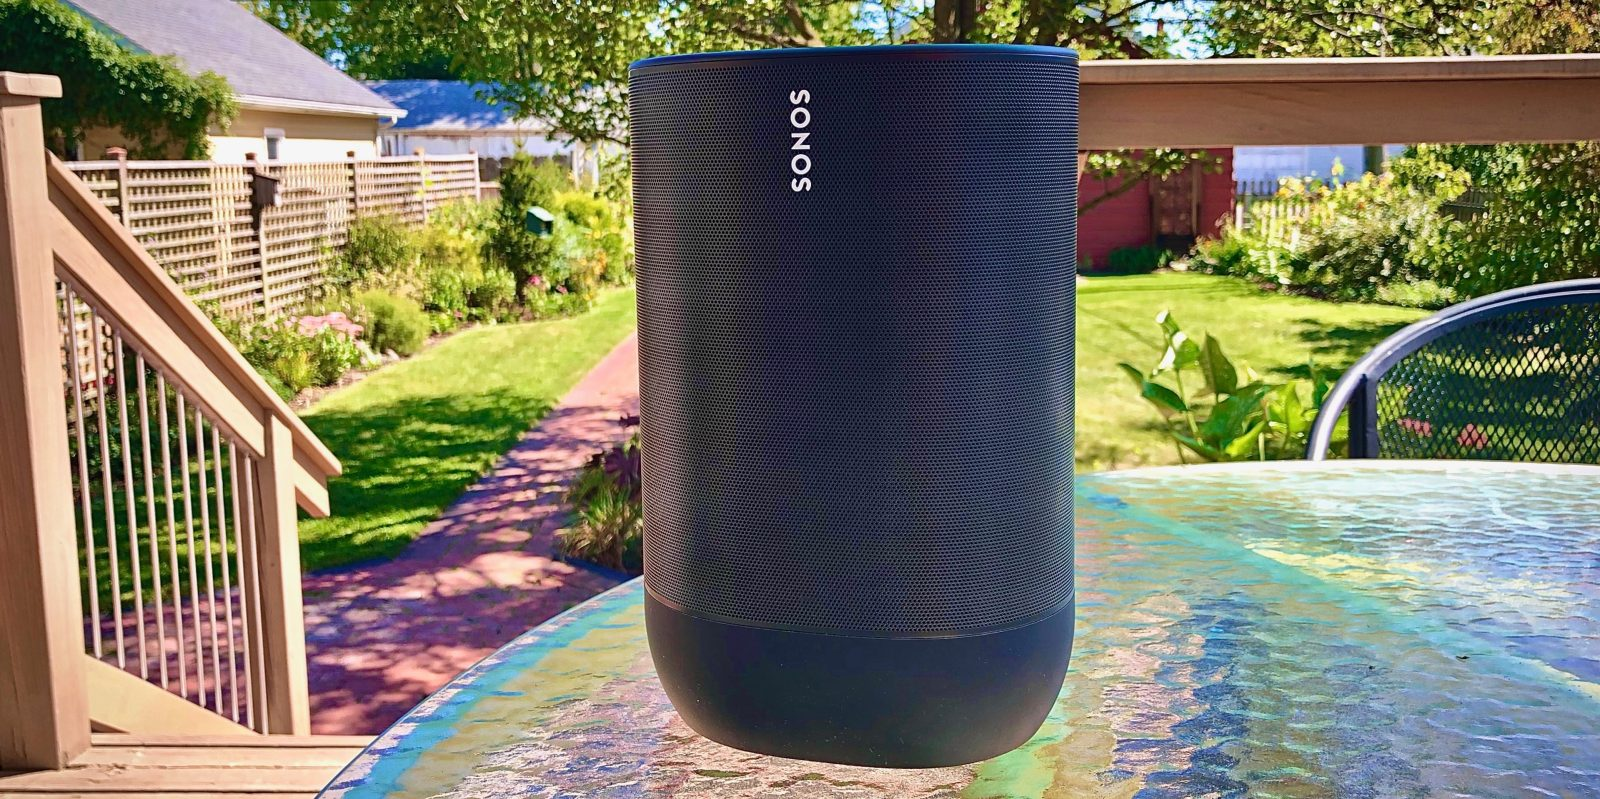 Review: Sonos Move portable speaker with Bluetooth delivers great design, functionality, and adaptive sound for any environment